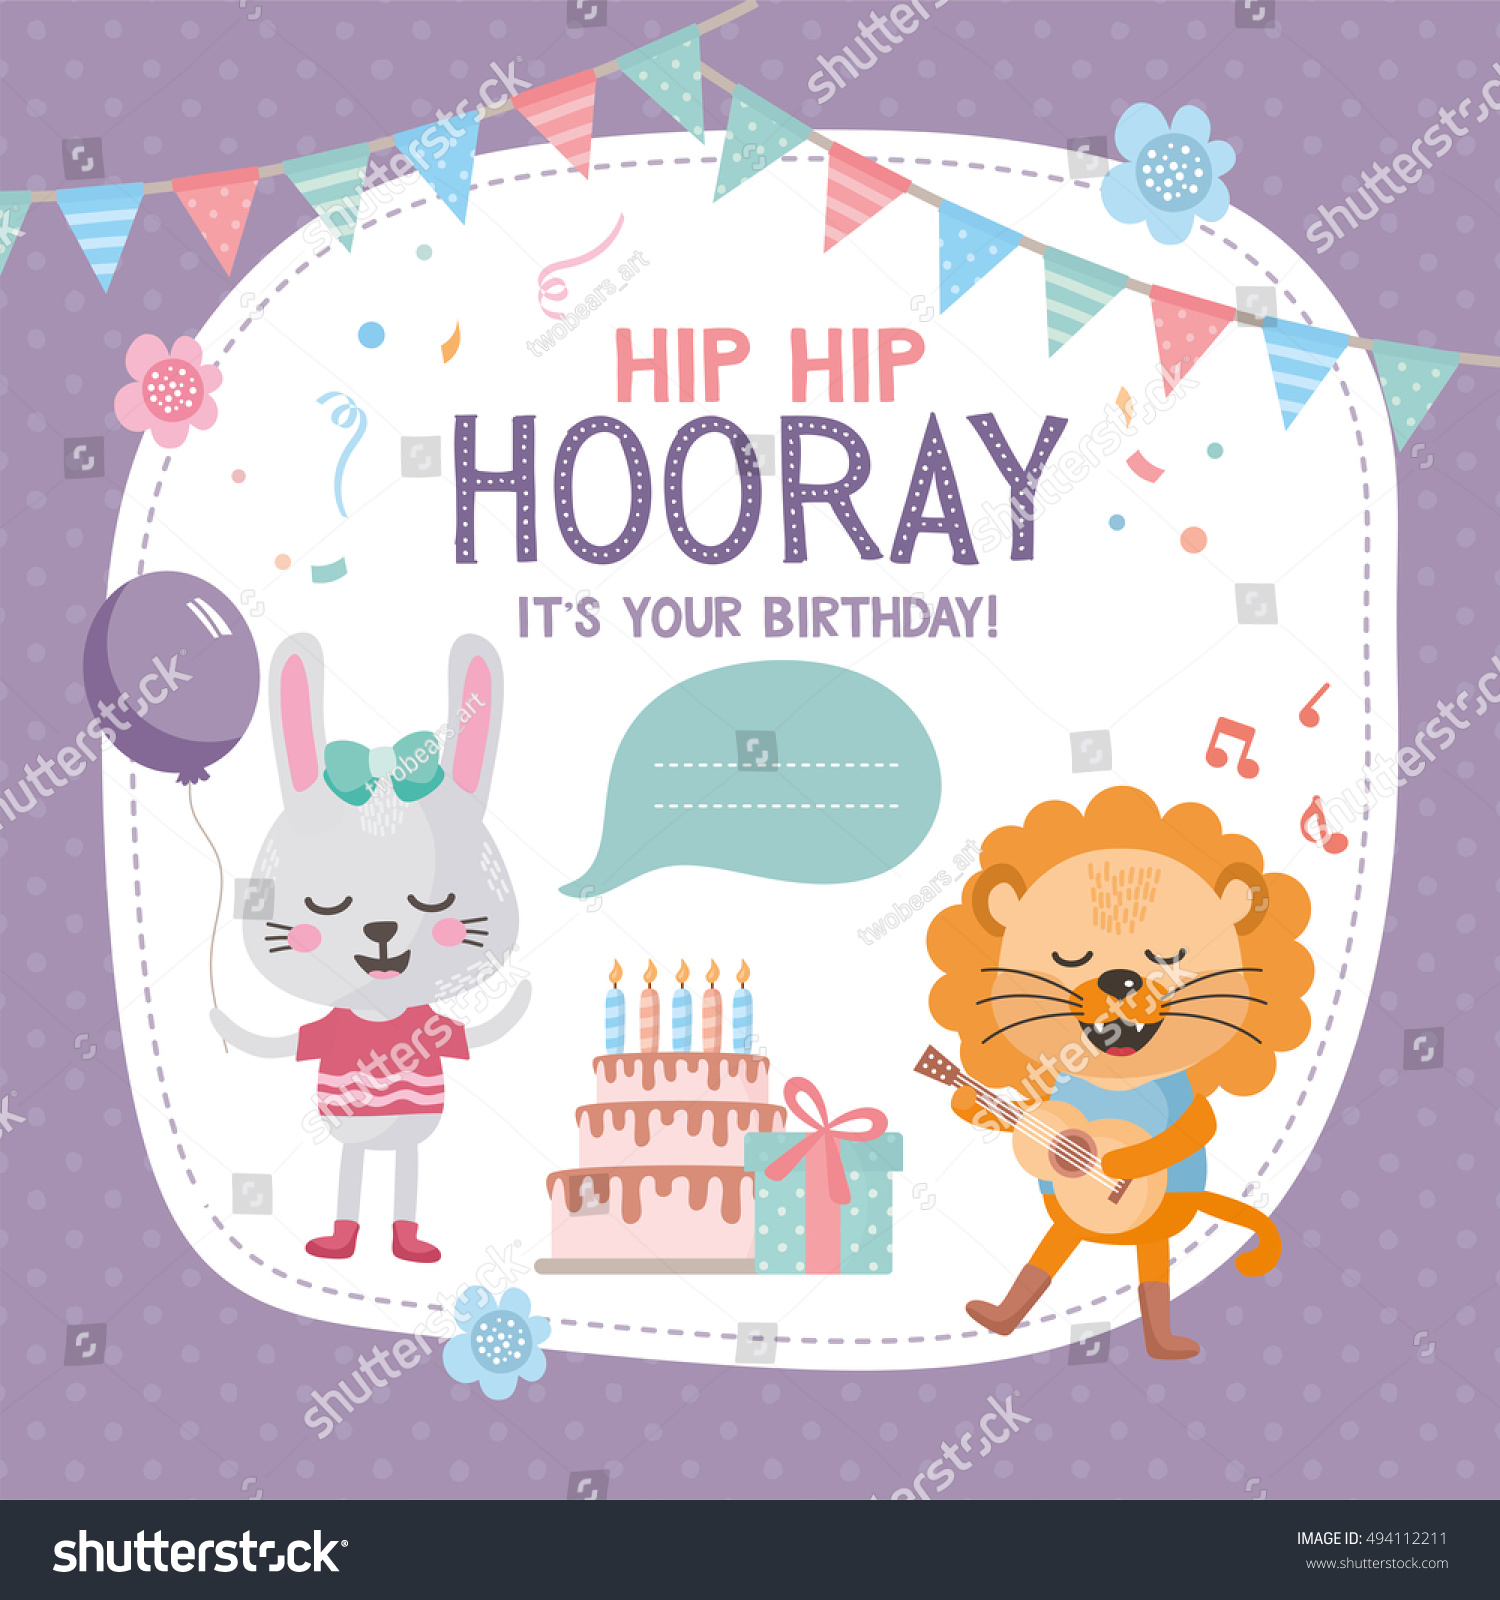 Greeting Card Design With Cute Lion And Rabbit Happy Birthday Invitation Template Flag